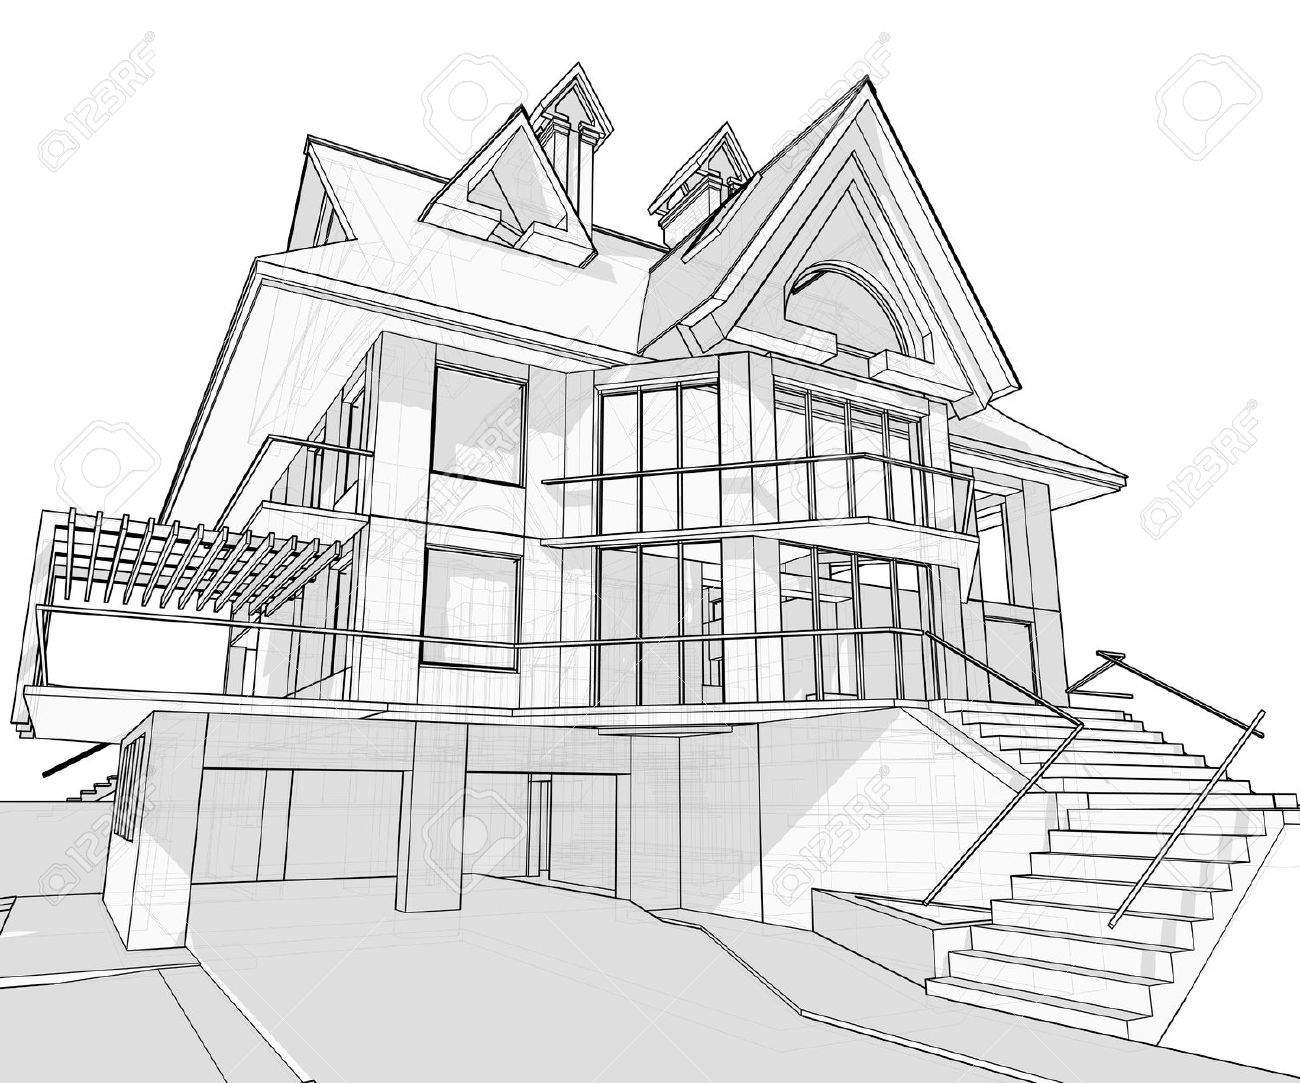 Related Sketch Pinterest Architecture Design